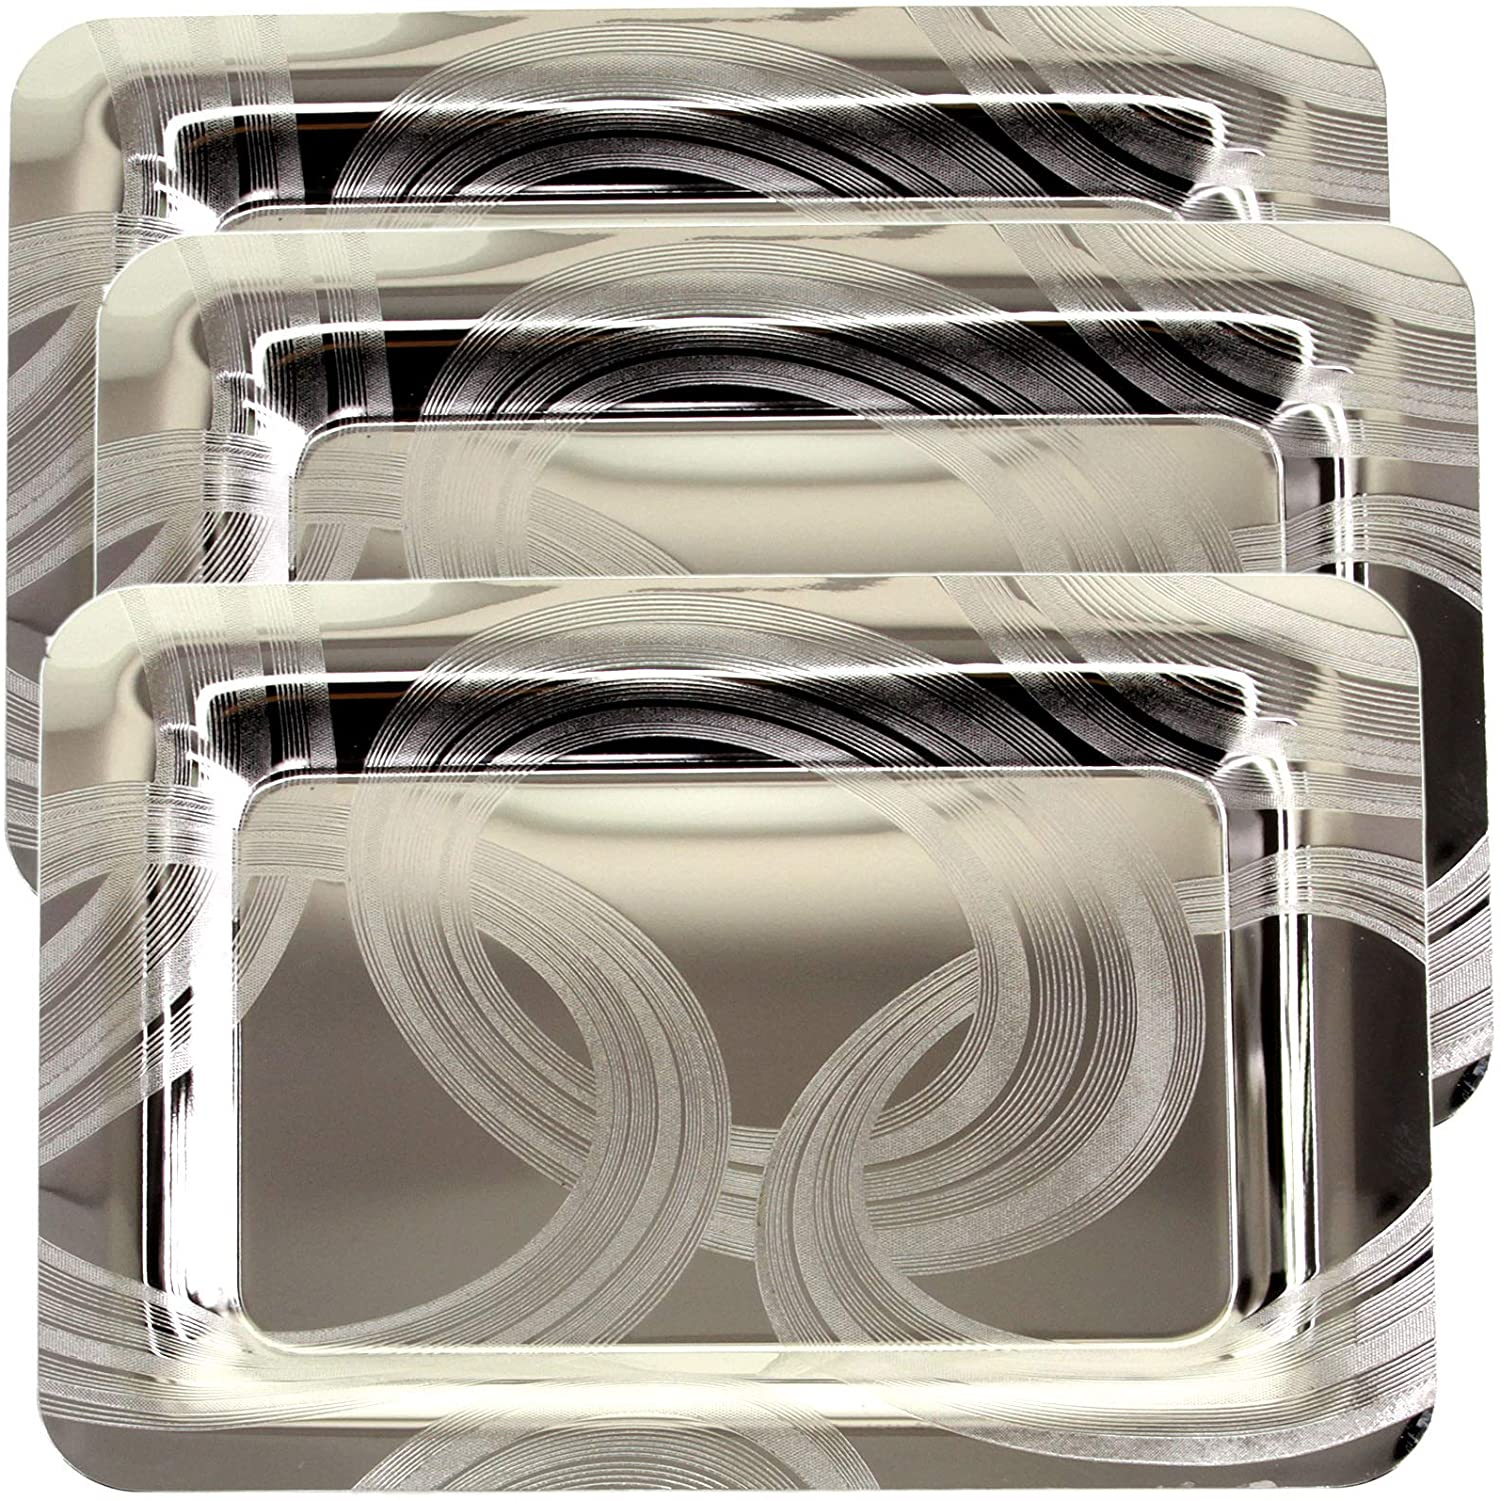 Maro Megastore (Pack of 3) 15.7 Inch x 11 Inch Oblong Chrome Plated Mirror Serving Tray Stylish Brush Paint Engraved Edge Decorative Party Birthday Wedding Dessert Buffet Wine Platter Plate CC-839